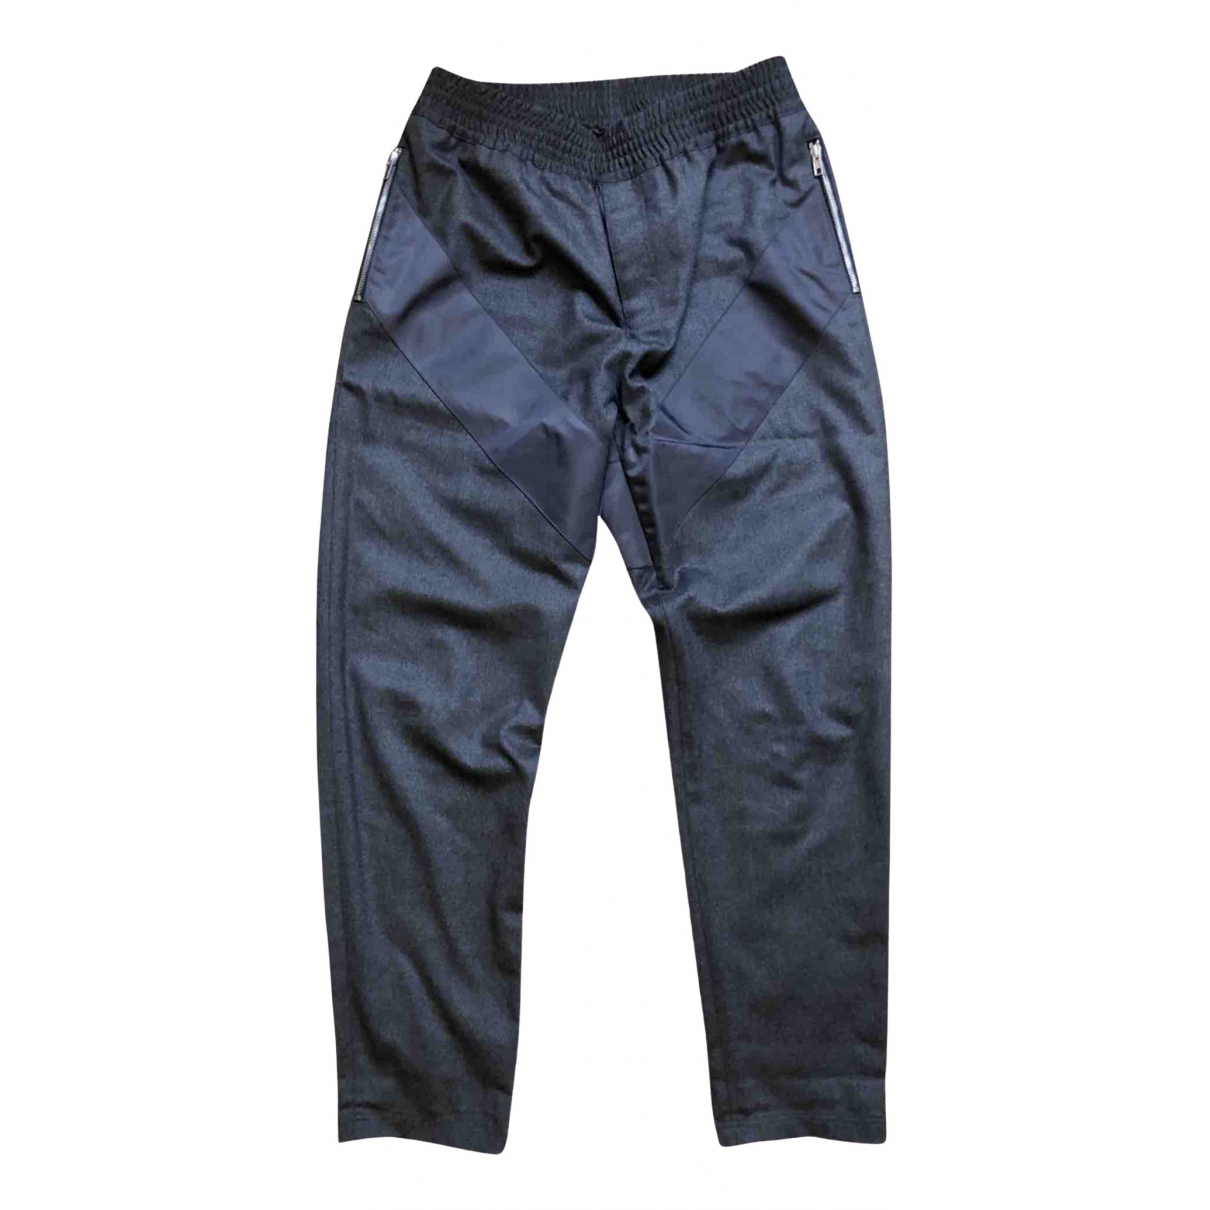 Givenchy \N Anthracite Wool Trousers for Men M International